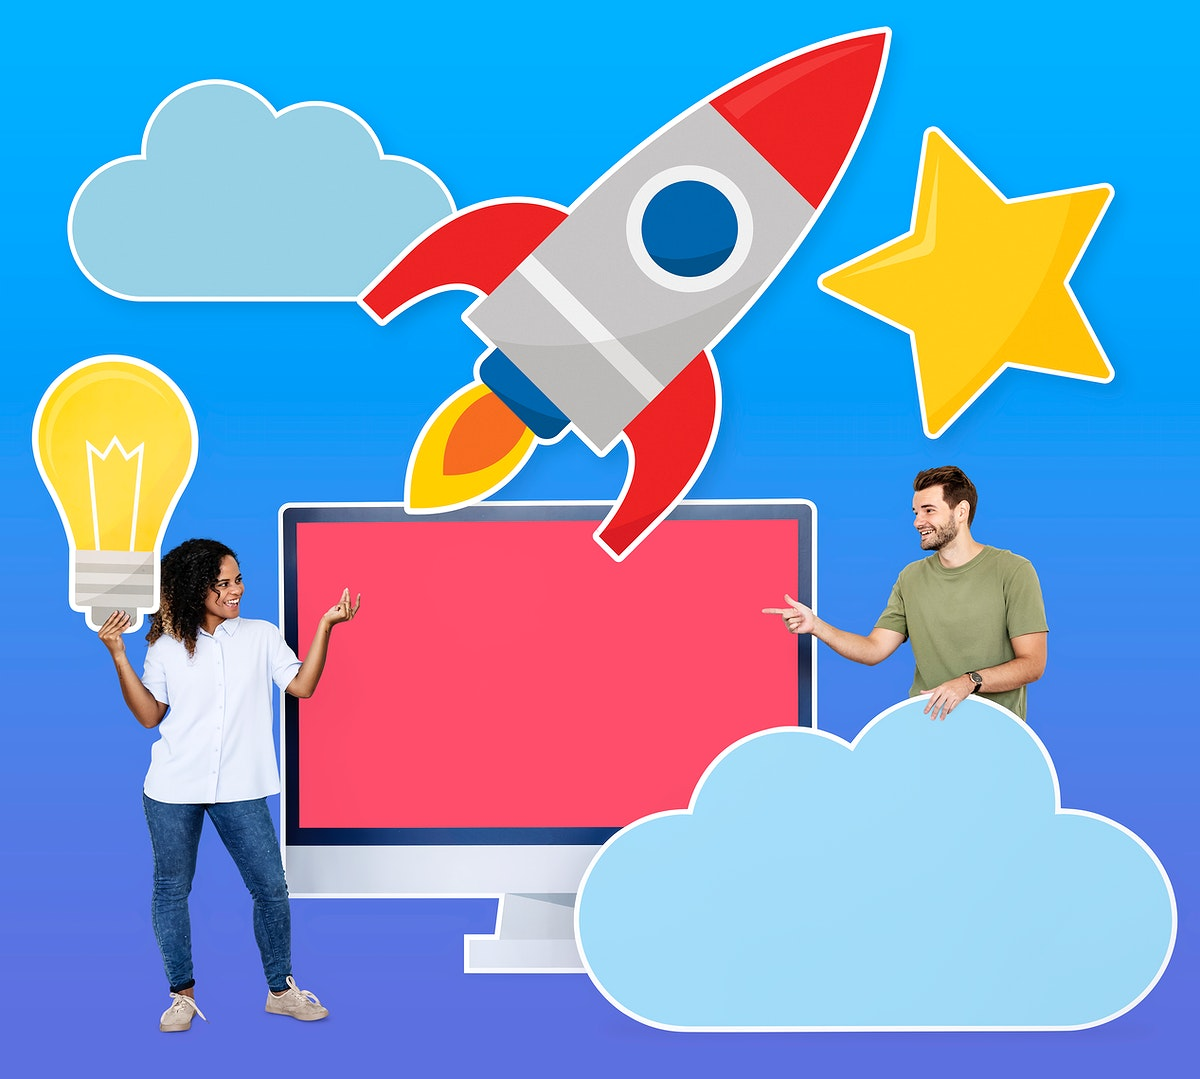 People holding cloud computing and ideas icons